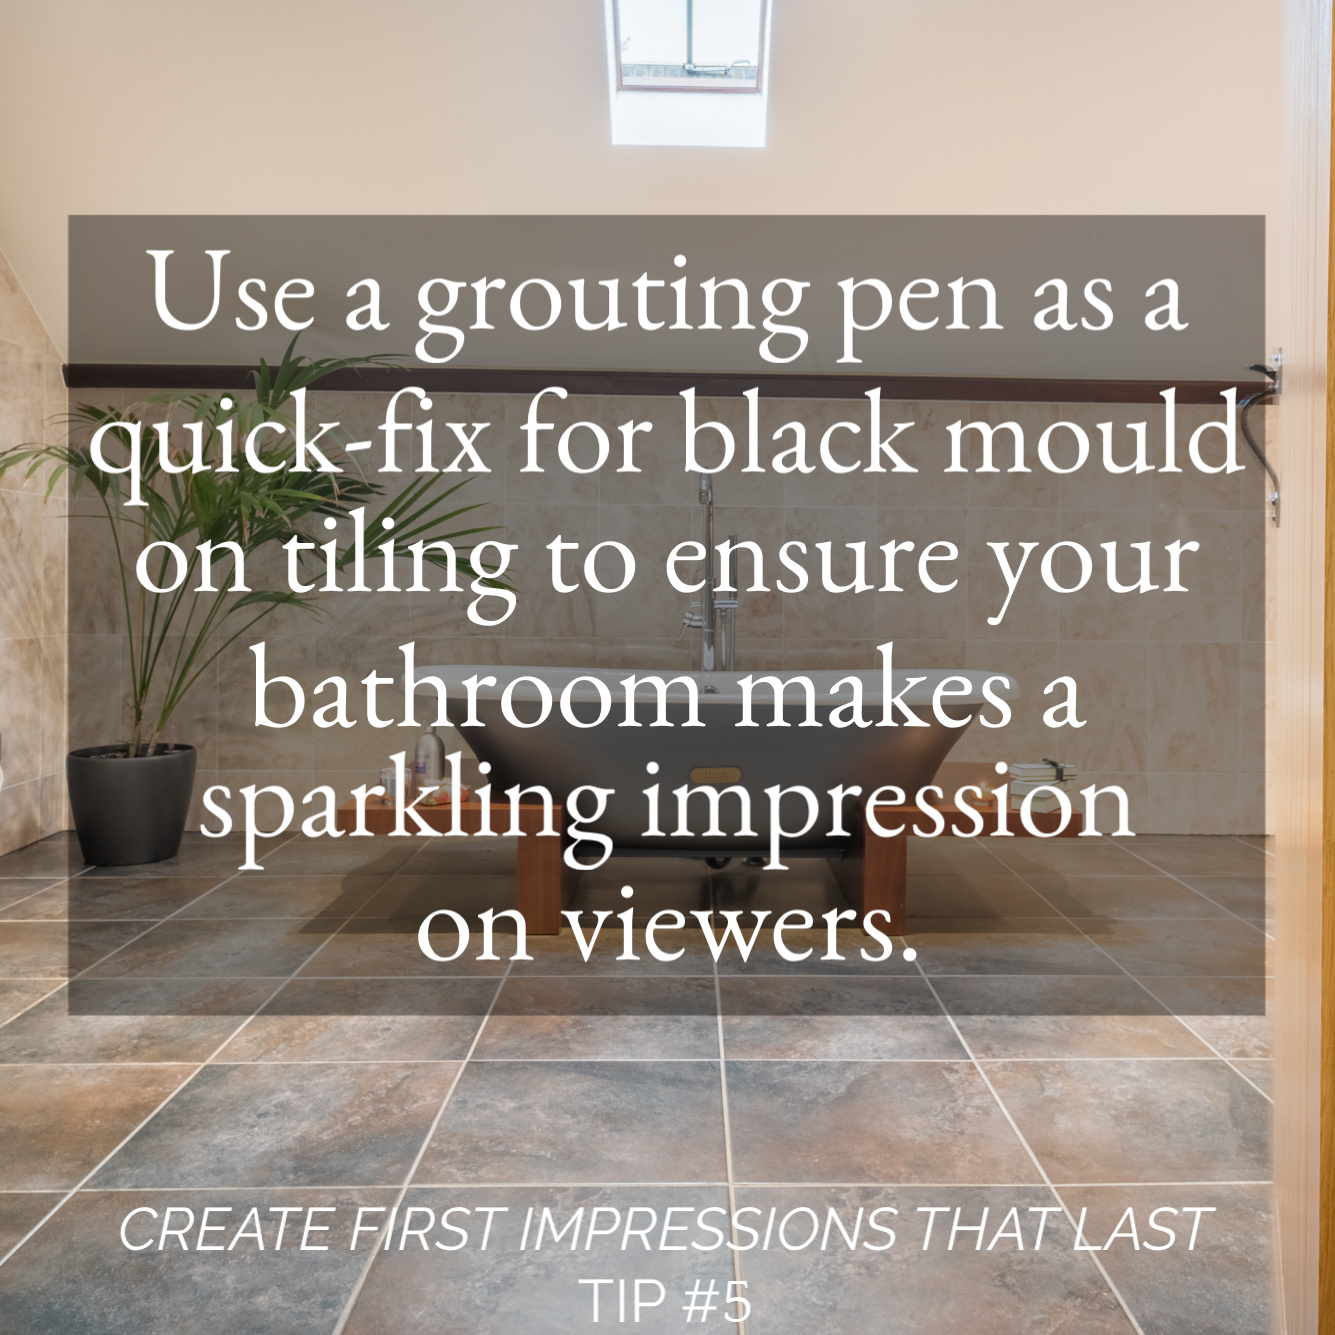 tg5-use-a-grouting-pen-as-a-quick-fix